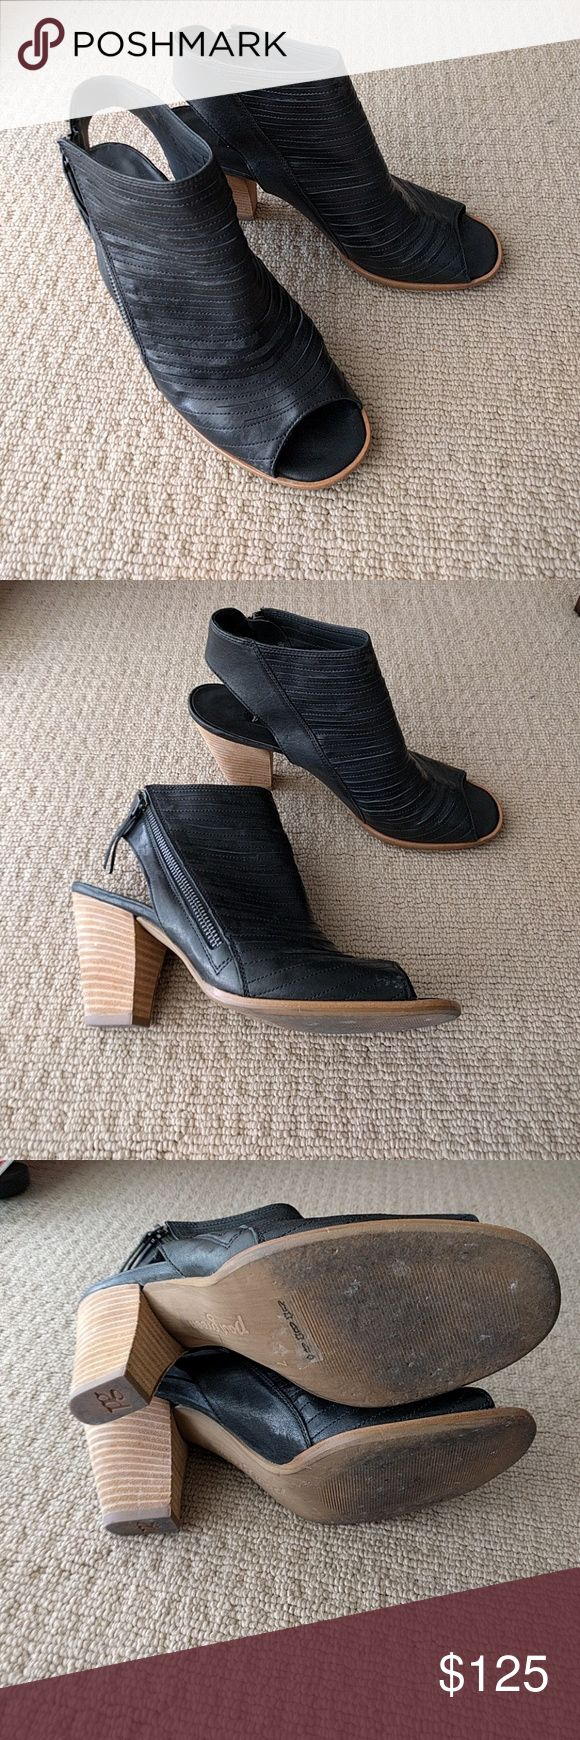 Paul Green Cayanne Black sandals sz 9.5 Worn but in great condition Paul Green Shoes Ankle Boots & Booties